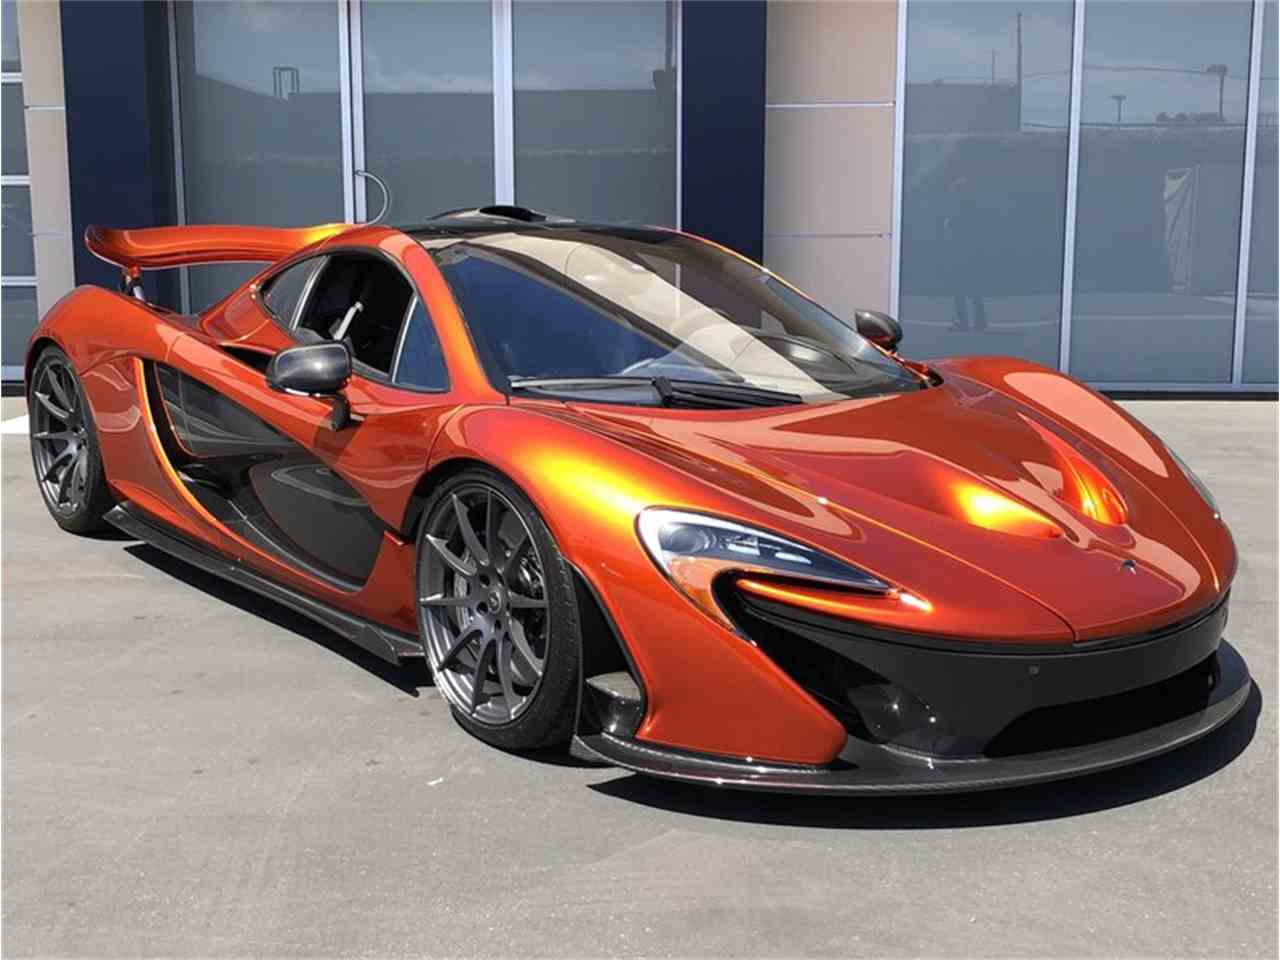 https://ccmarketplace.azureedge.net/cc-temp/listing/110/6939/12437112-2014-mclaren-p1-std-c.jpg